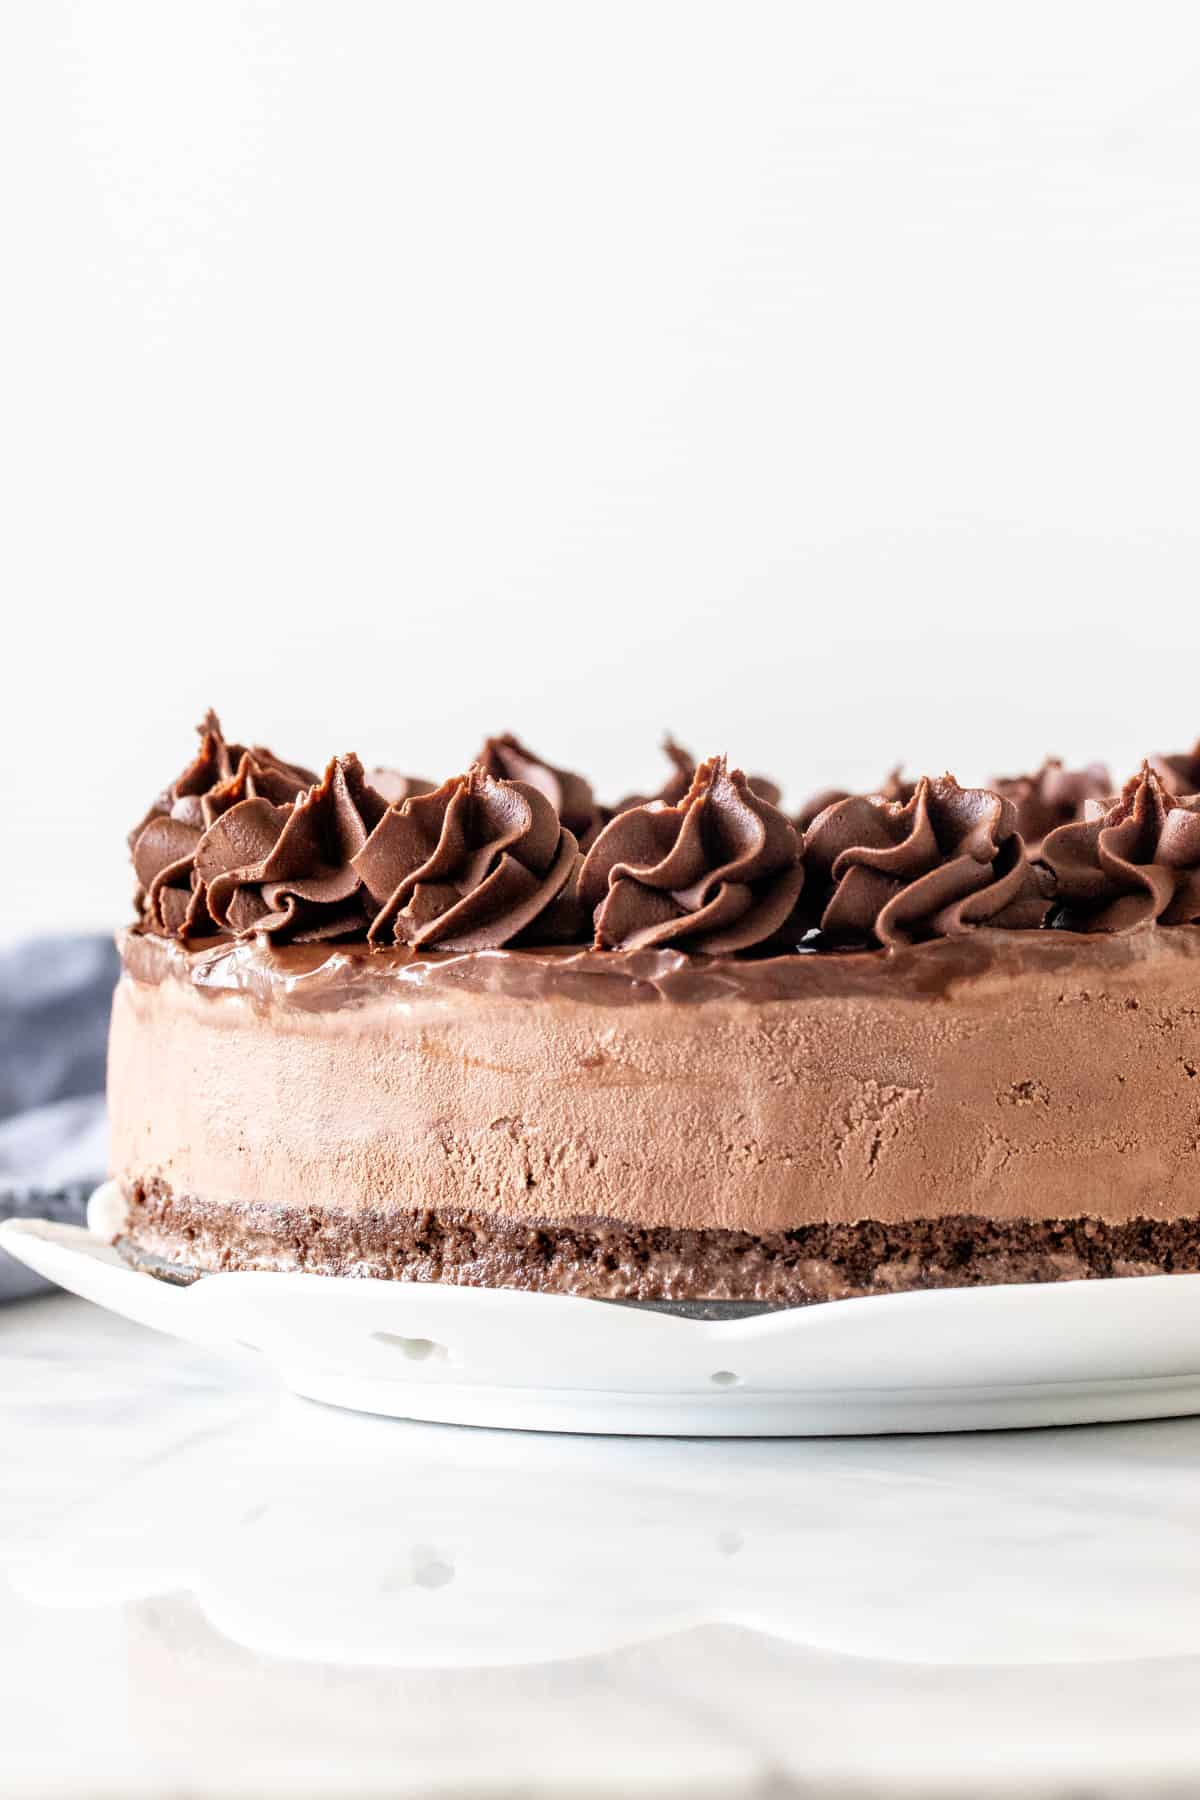 Chocolate ice cream cake with brownie base and chocolate frosting